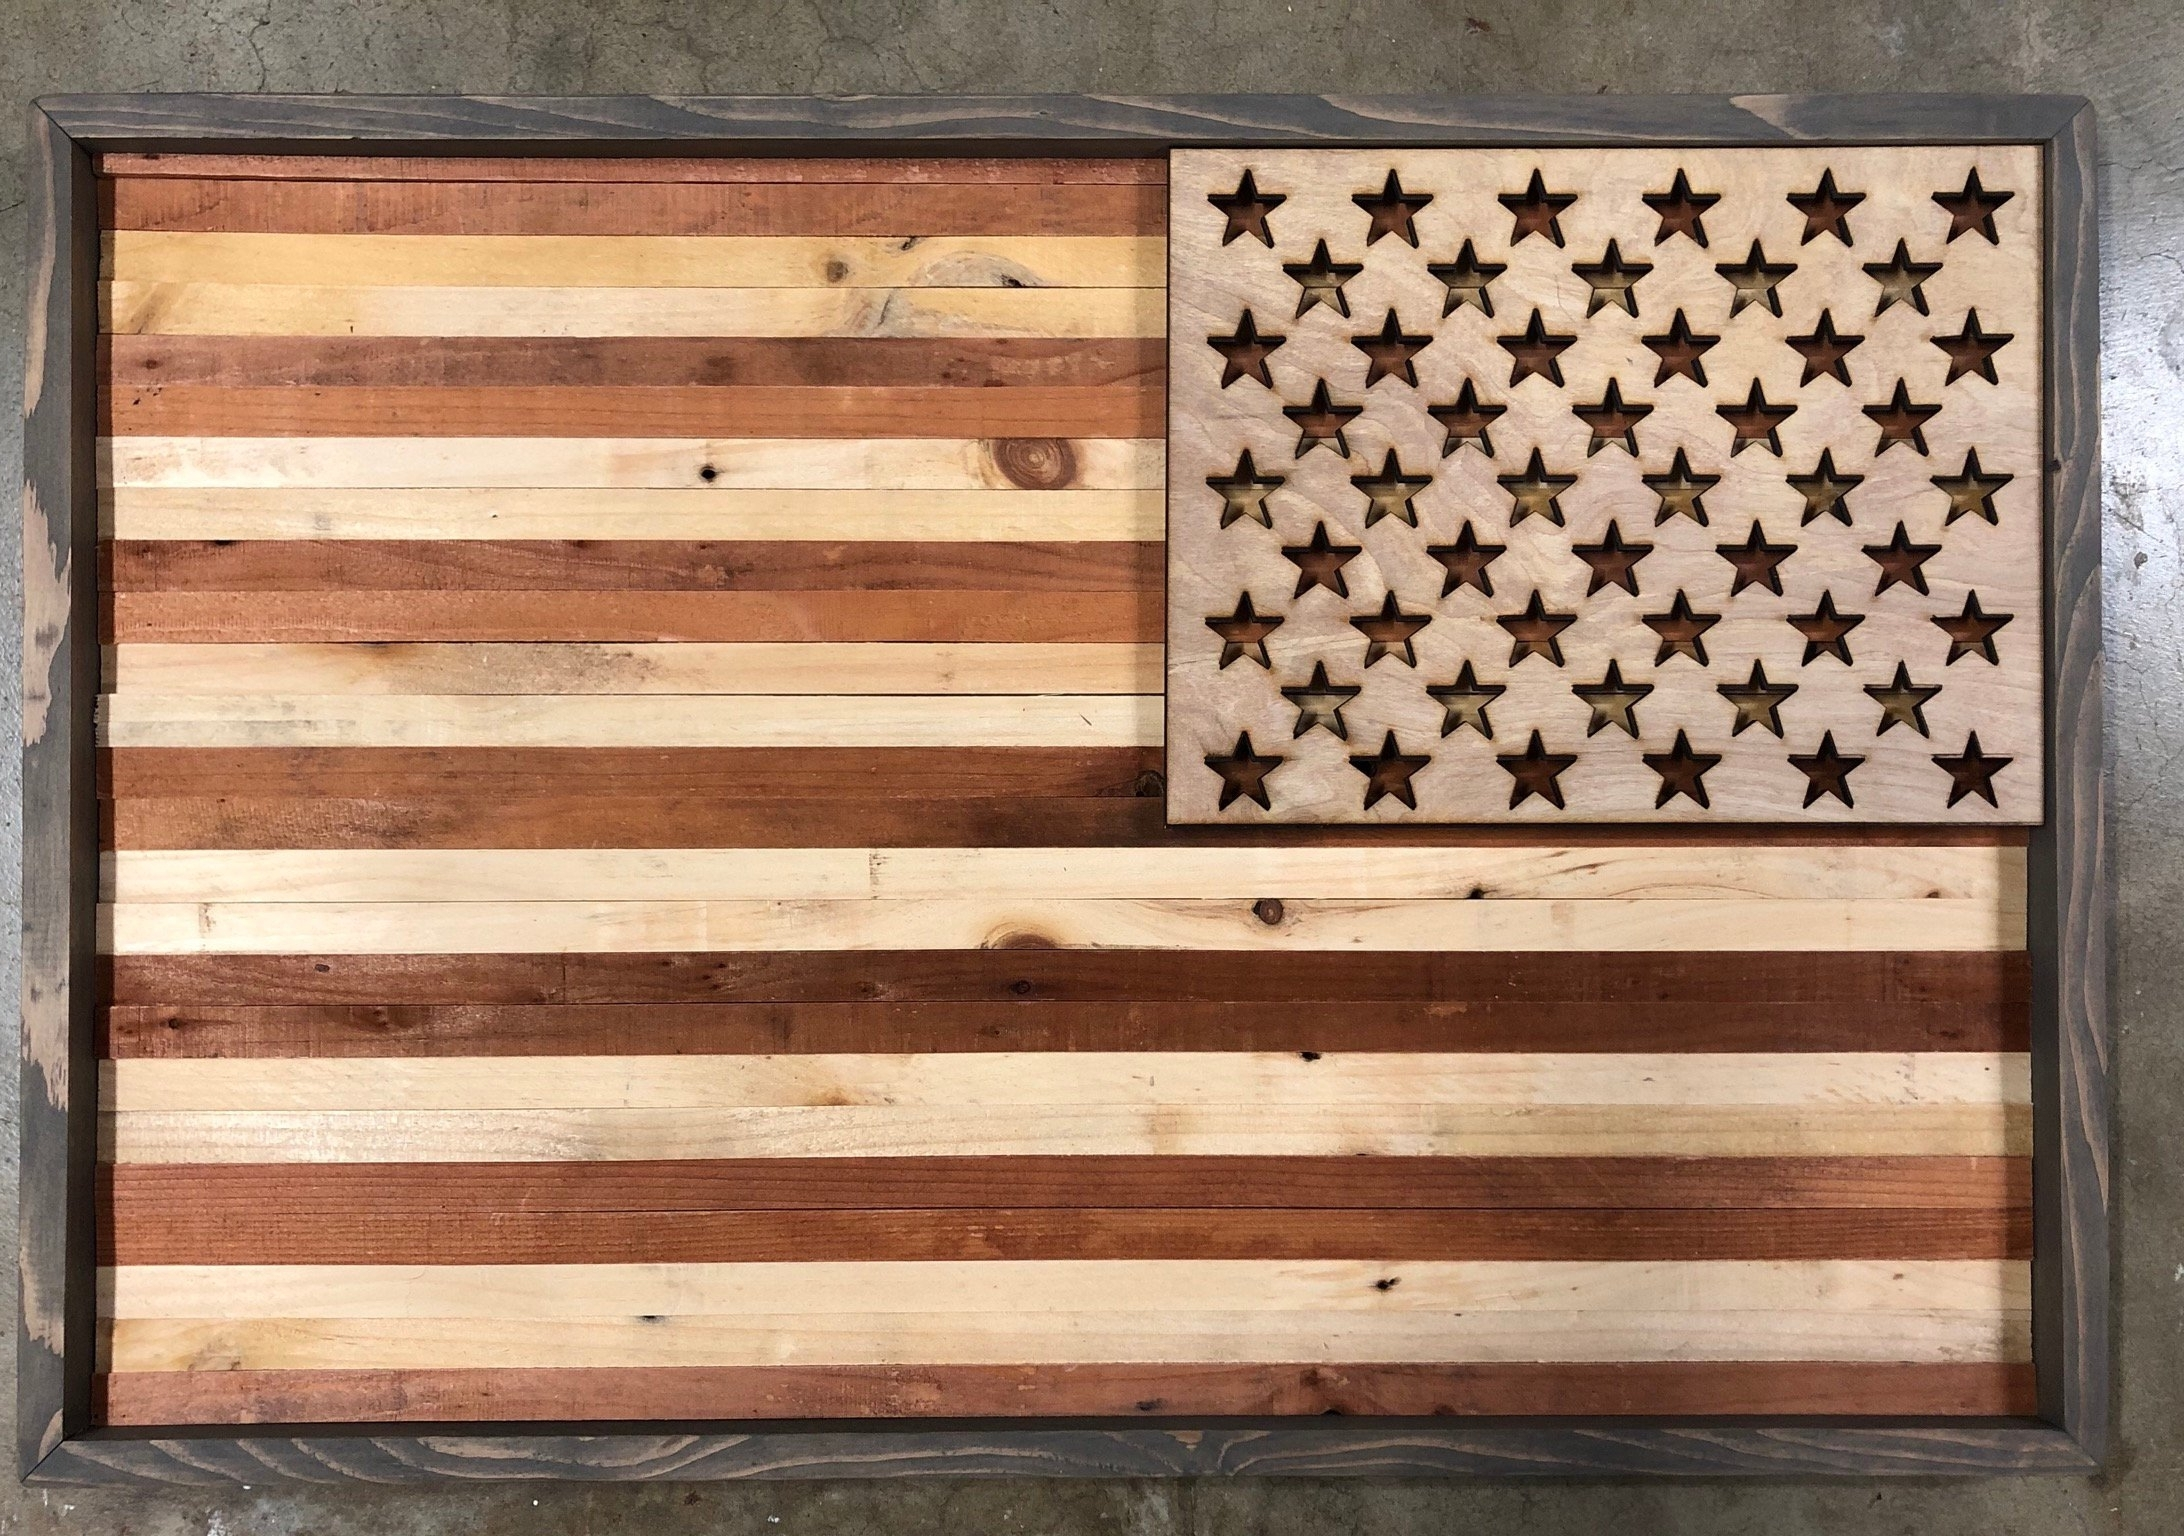 Rustic American Flag Wall Art Within Latest Rustic American Flag Wall Art (Gallery 14 of 20)